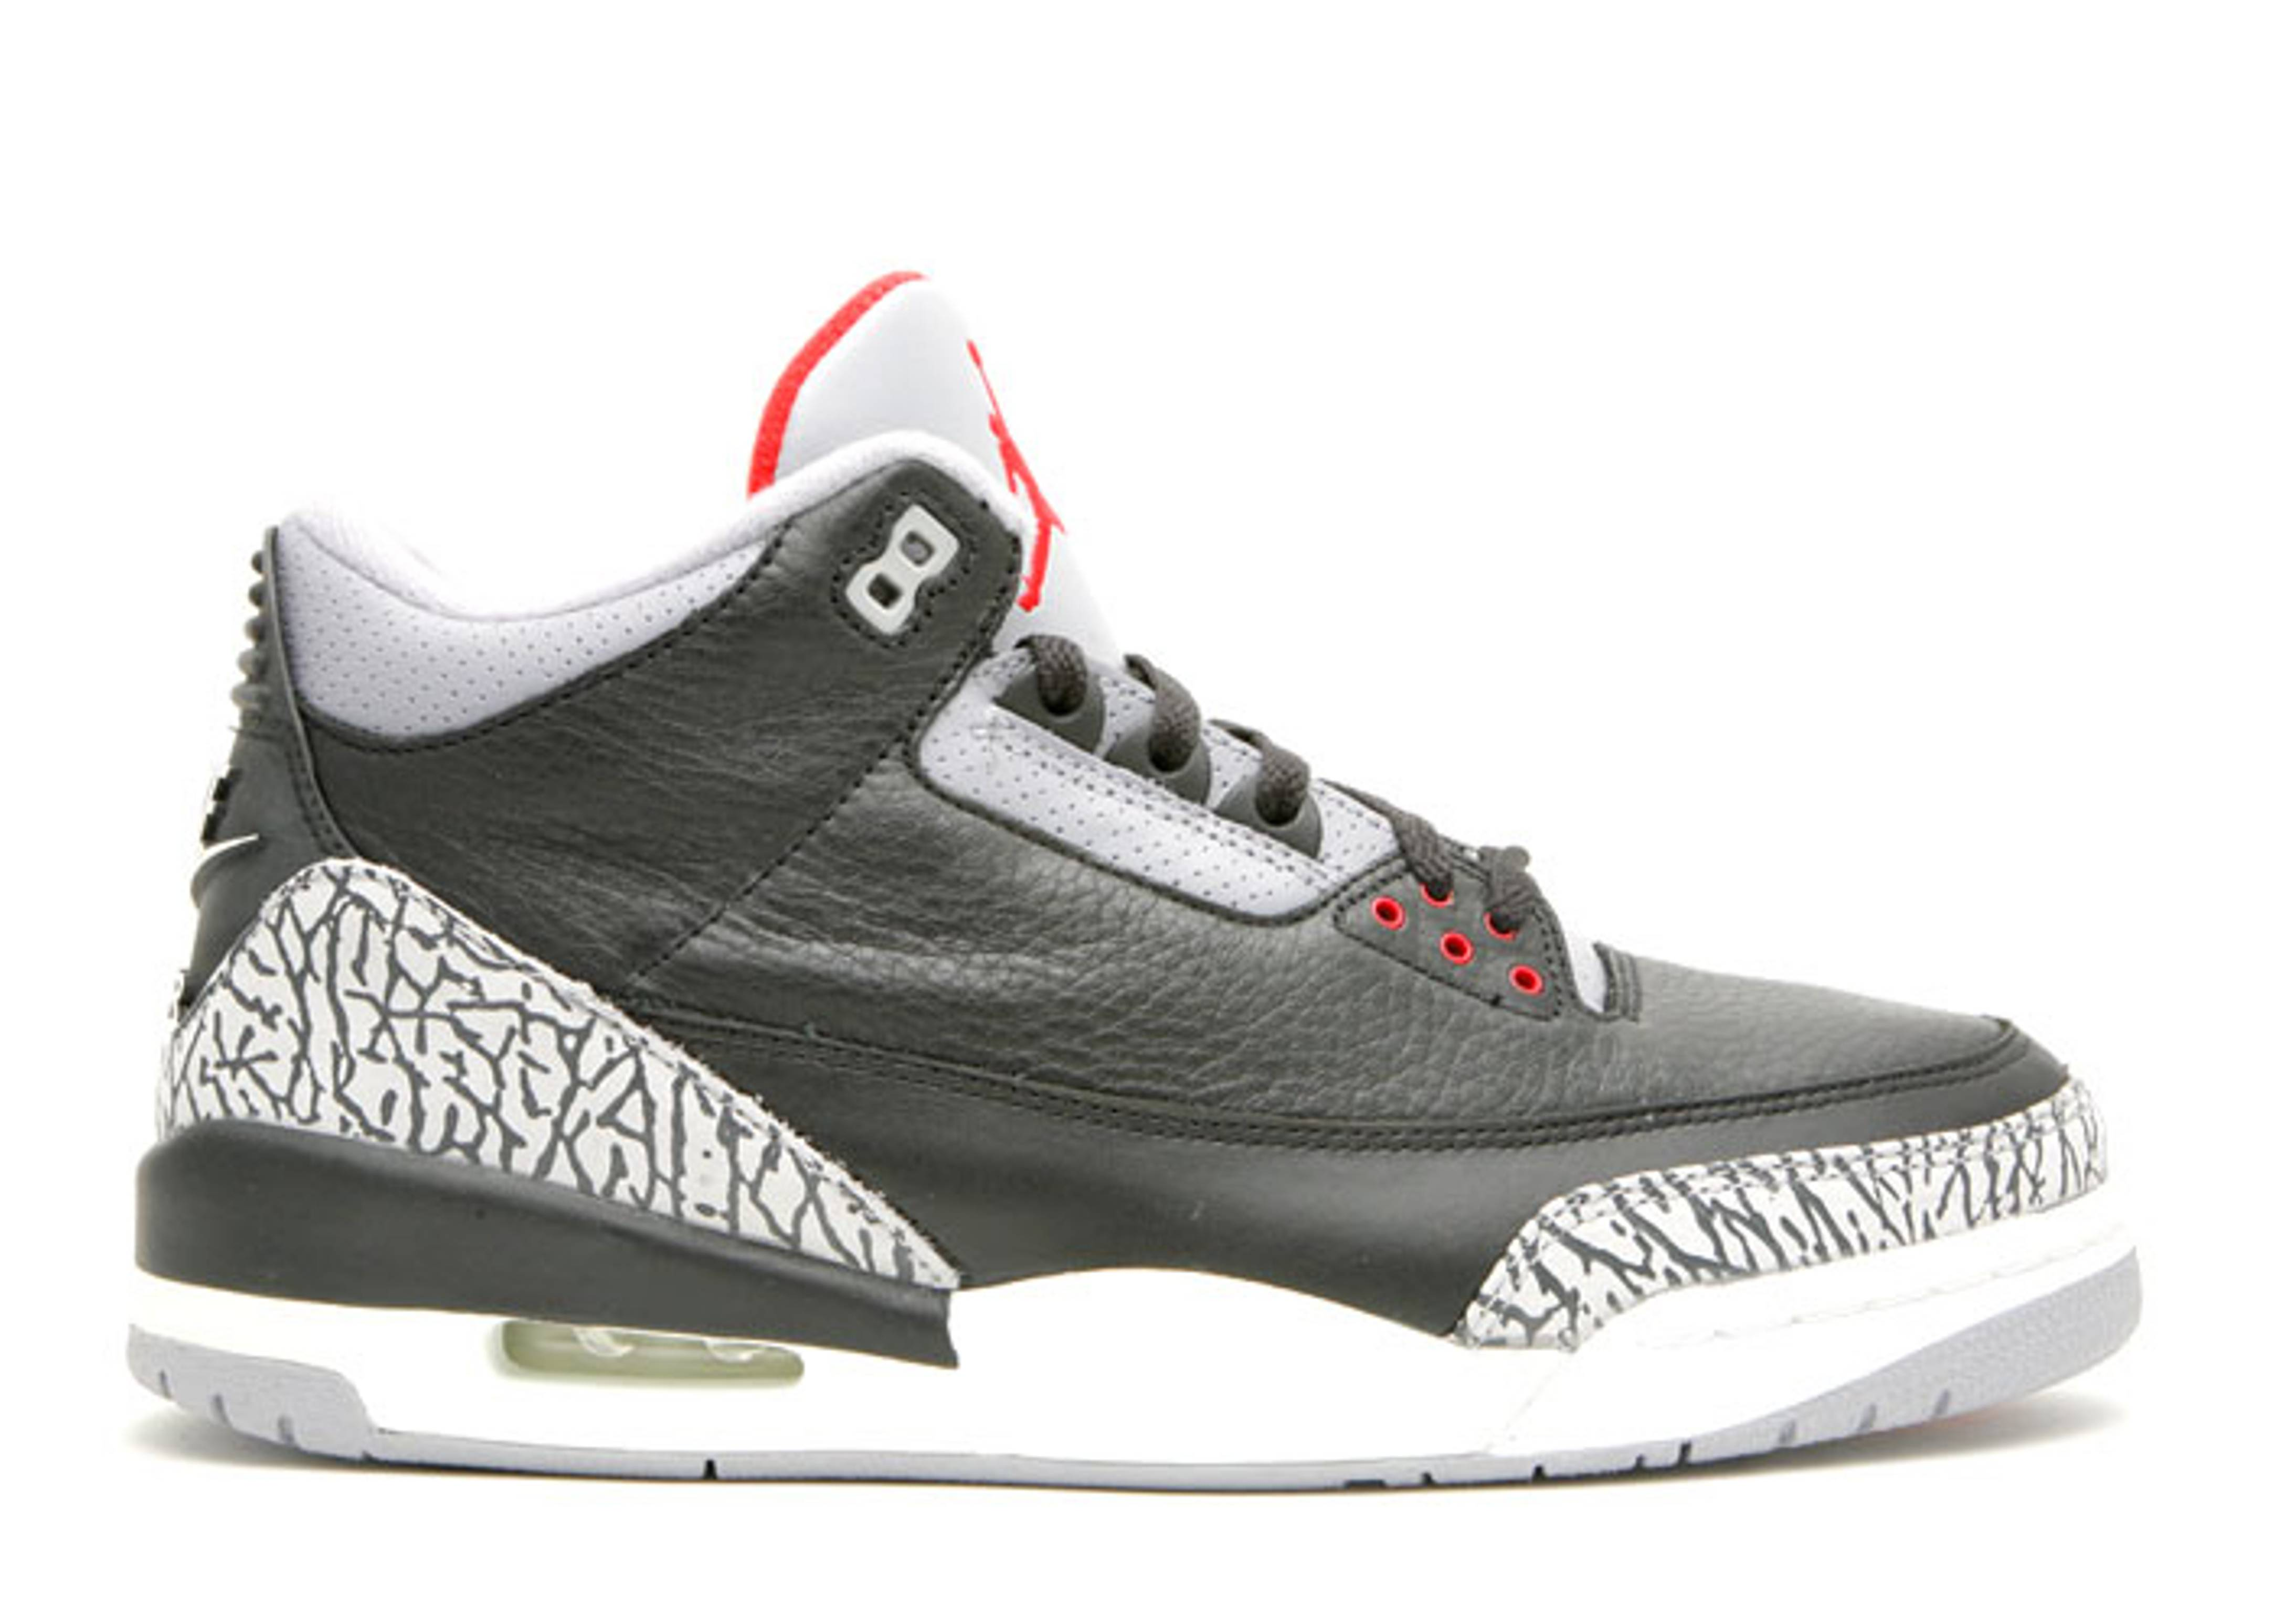 air jordan 3 retro black cement grey. Black Bedroom Furniture Sets. Home Design Ideas